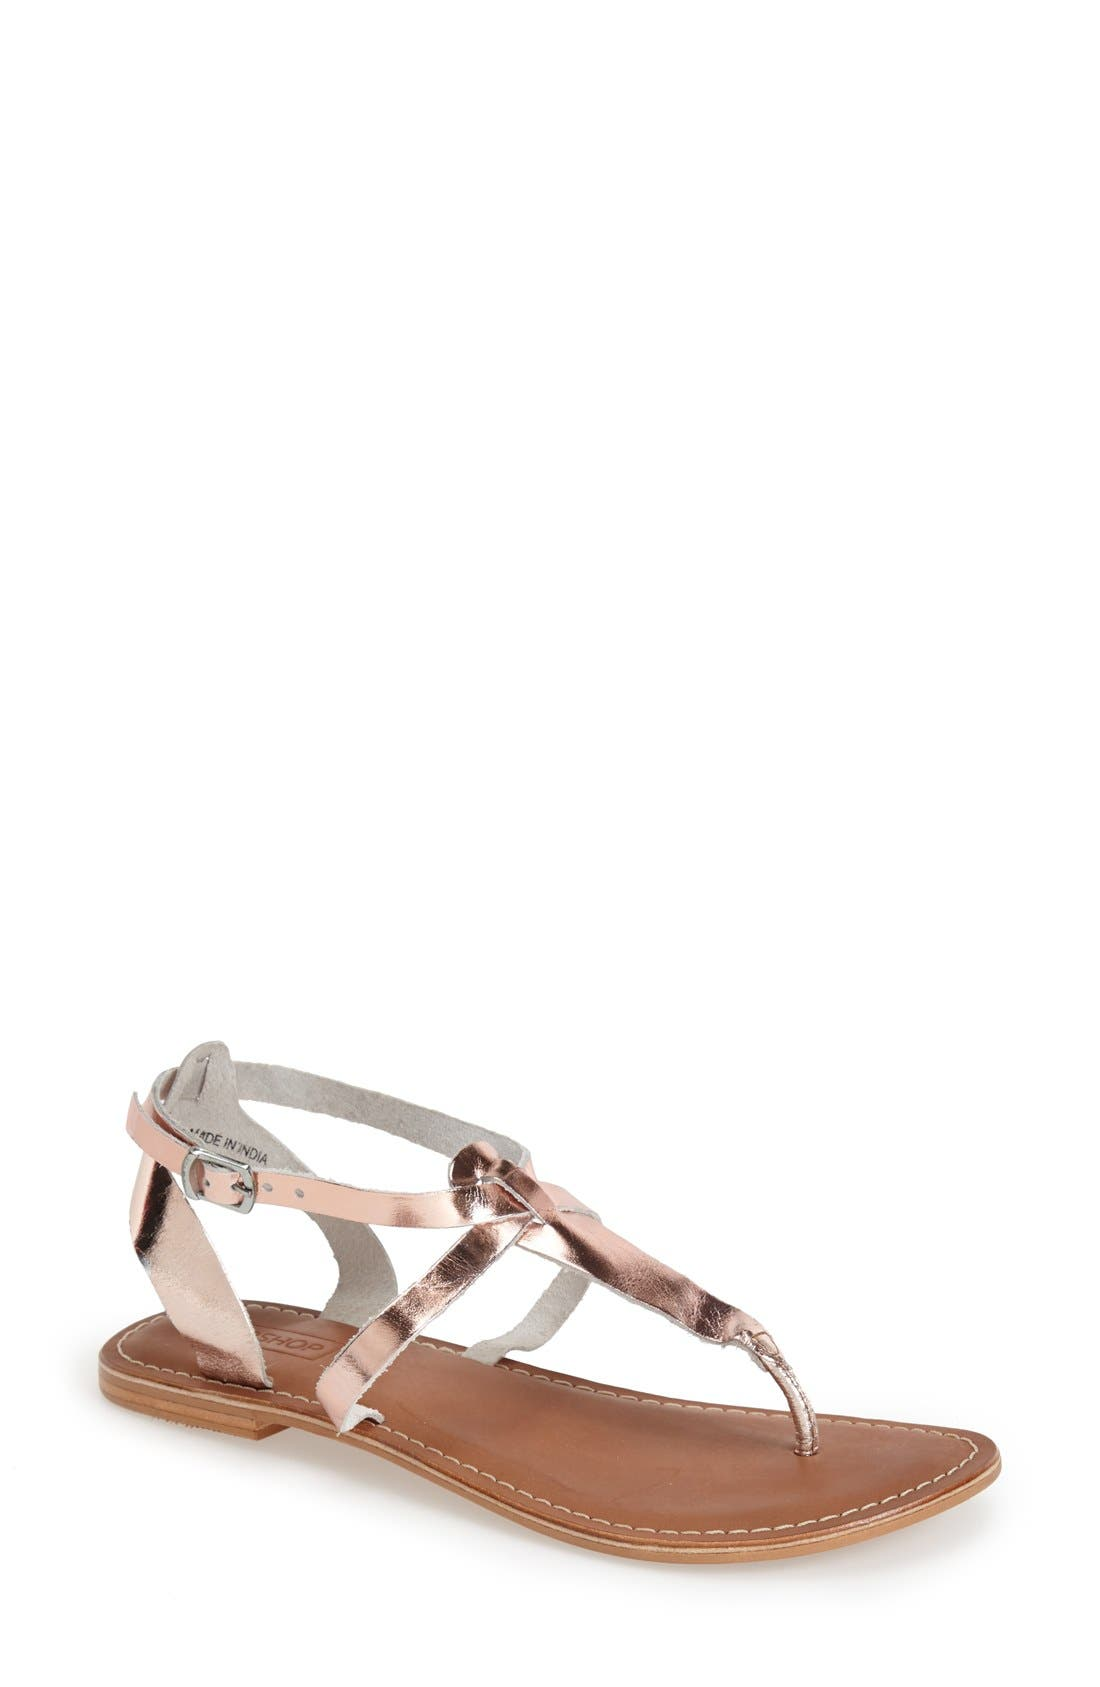 Main Image - Topshop 'Horizon' Leather Sandal